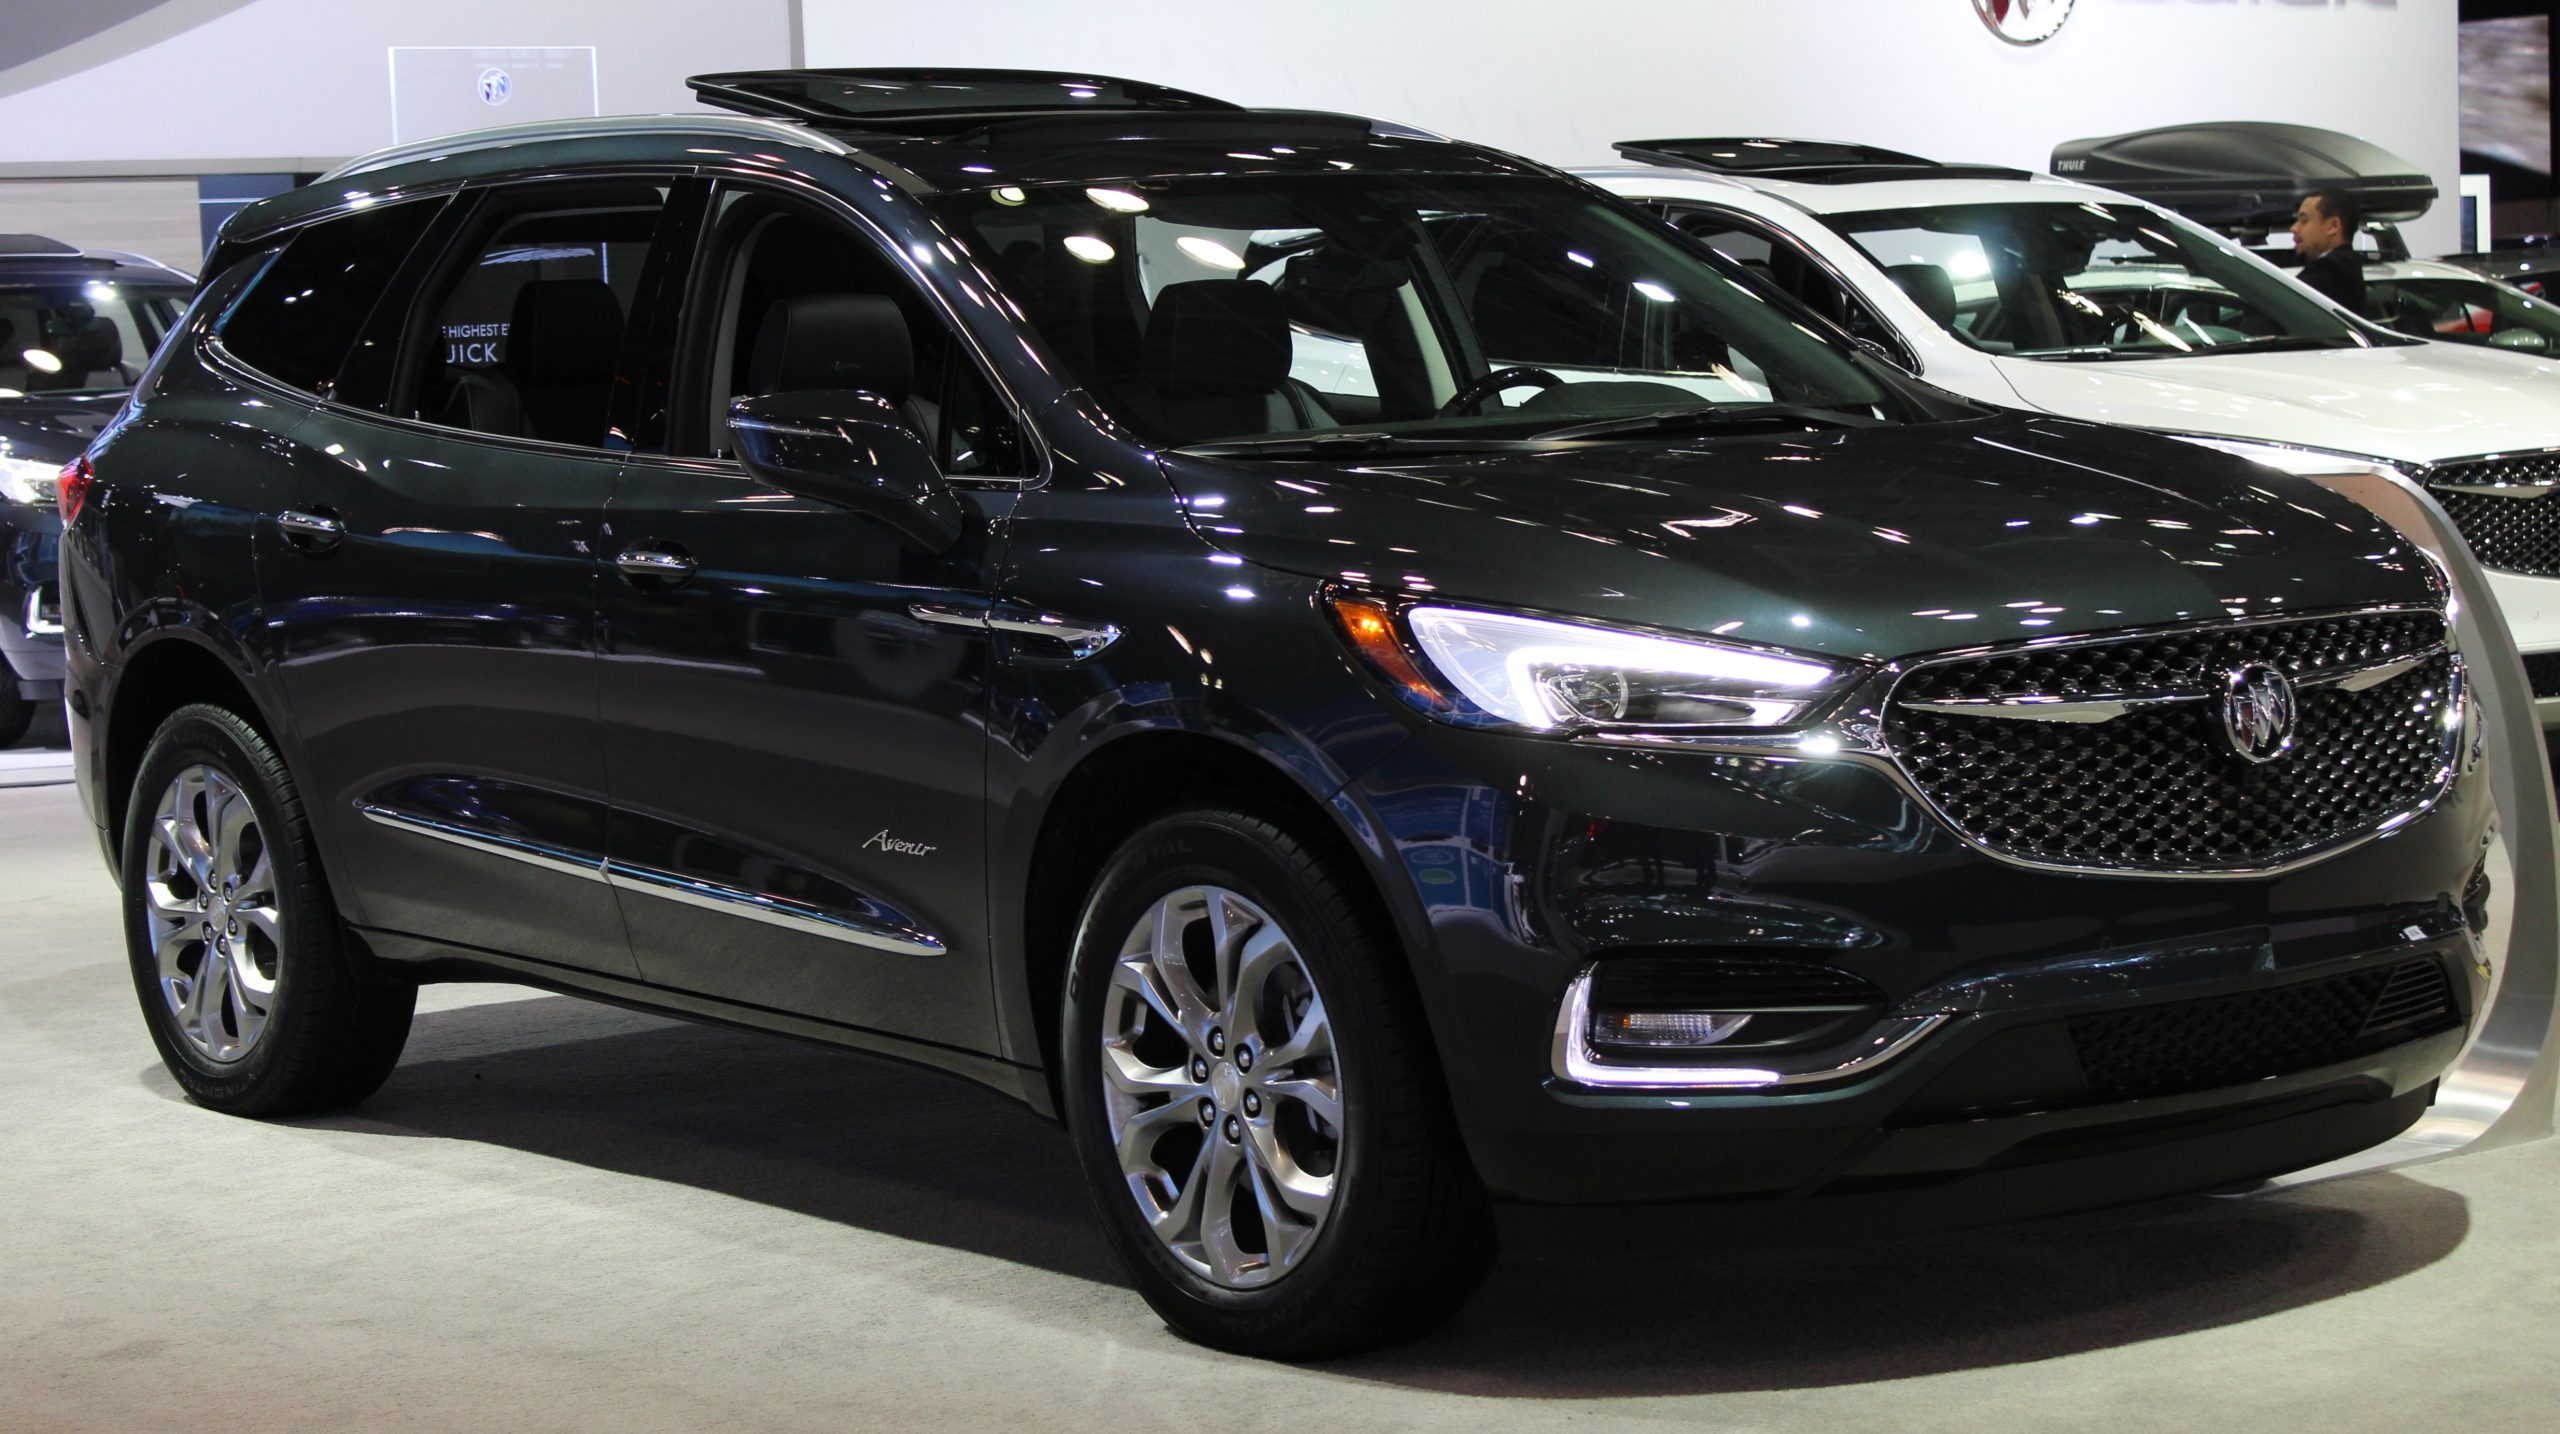 Buick Enclave - Wikipedia 2022 Buick Encore Cost, Build And Price, Engine